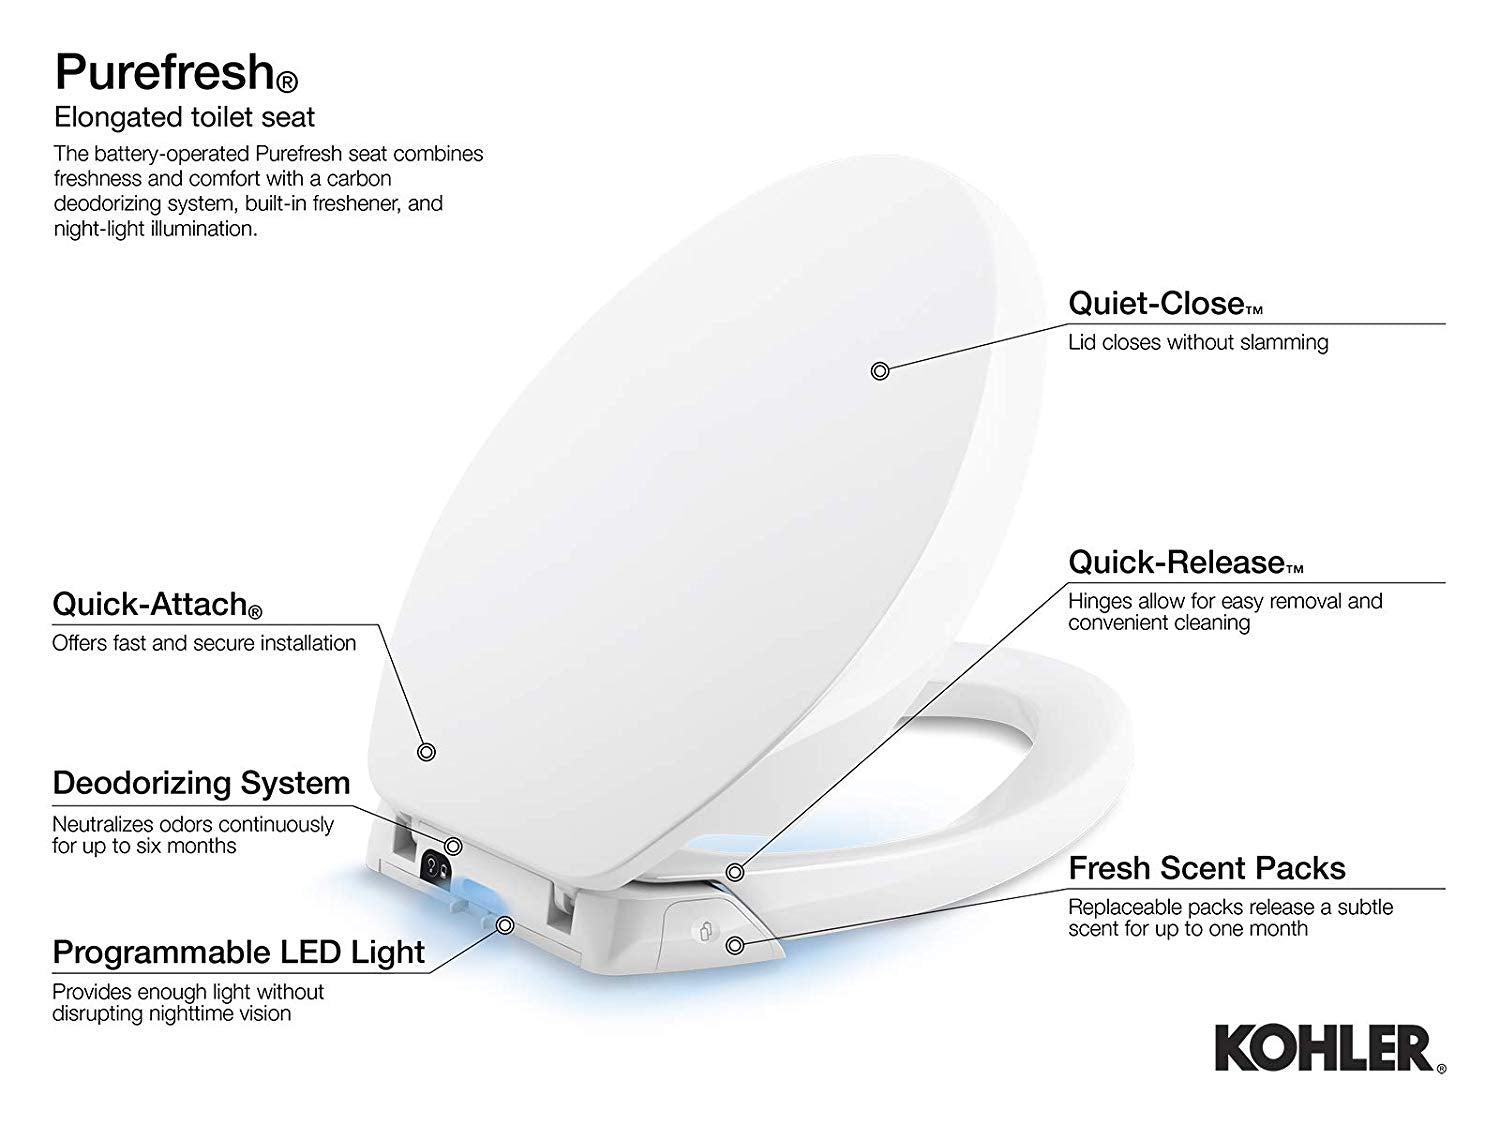 Fabulous Kohler K 5588 0 Purefresh Quiet Close With Grip Tight Bumpers Elongated Toilet Seat White Andrewgaddart Wooden Chair Designs For Living Room Andrewgaddartcom